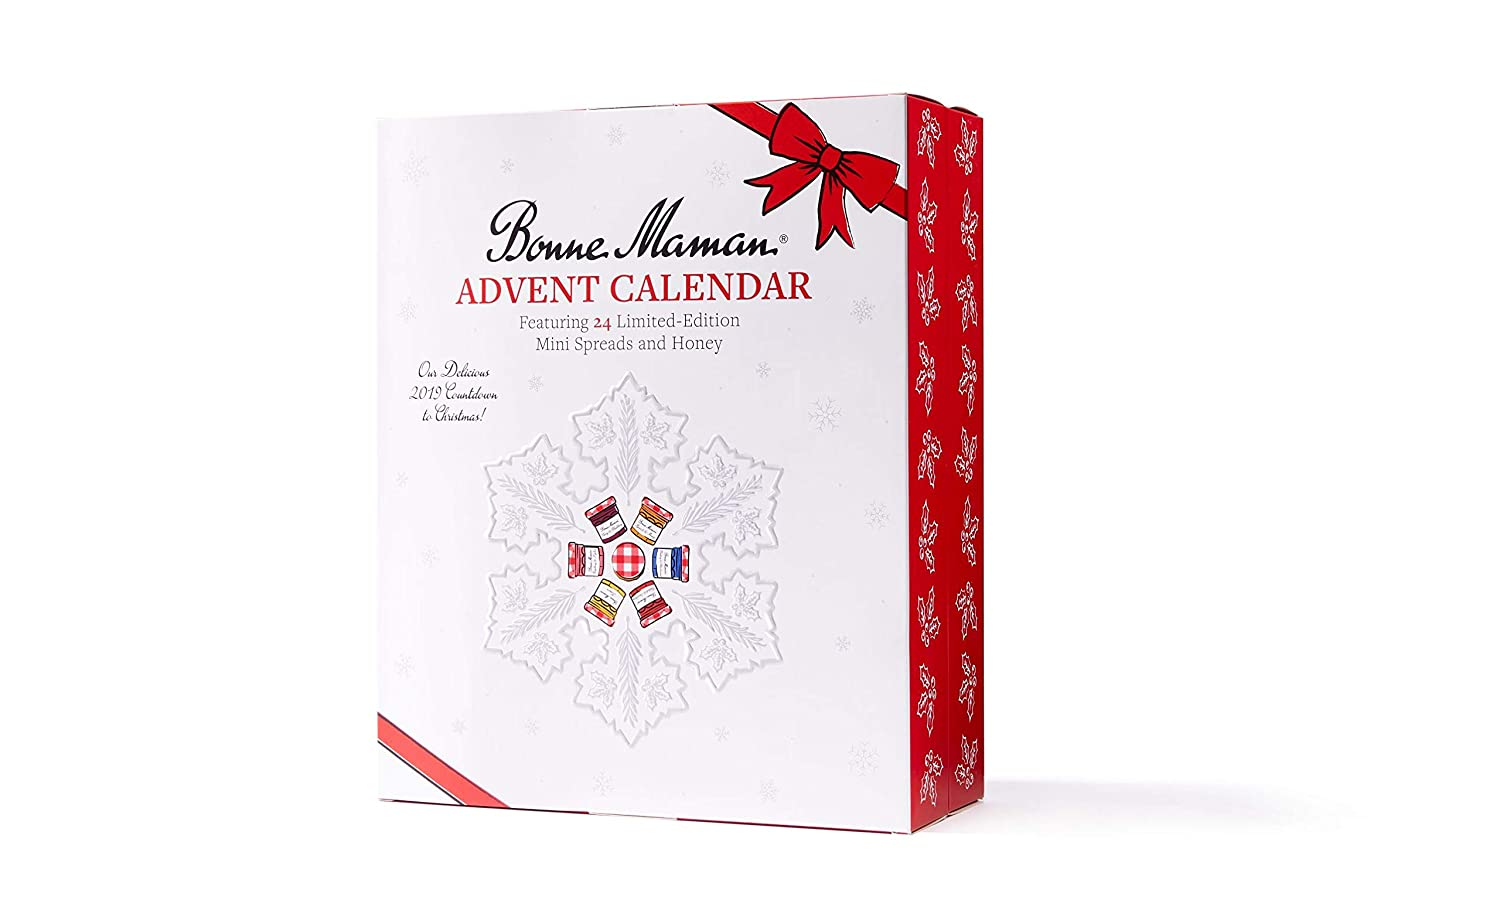 Bonne Maman 2019 LIMITED EDITION Advent Calendar, with 24 jars